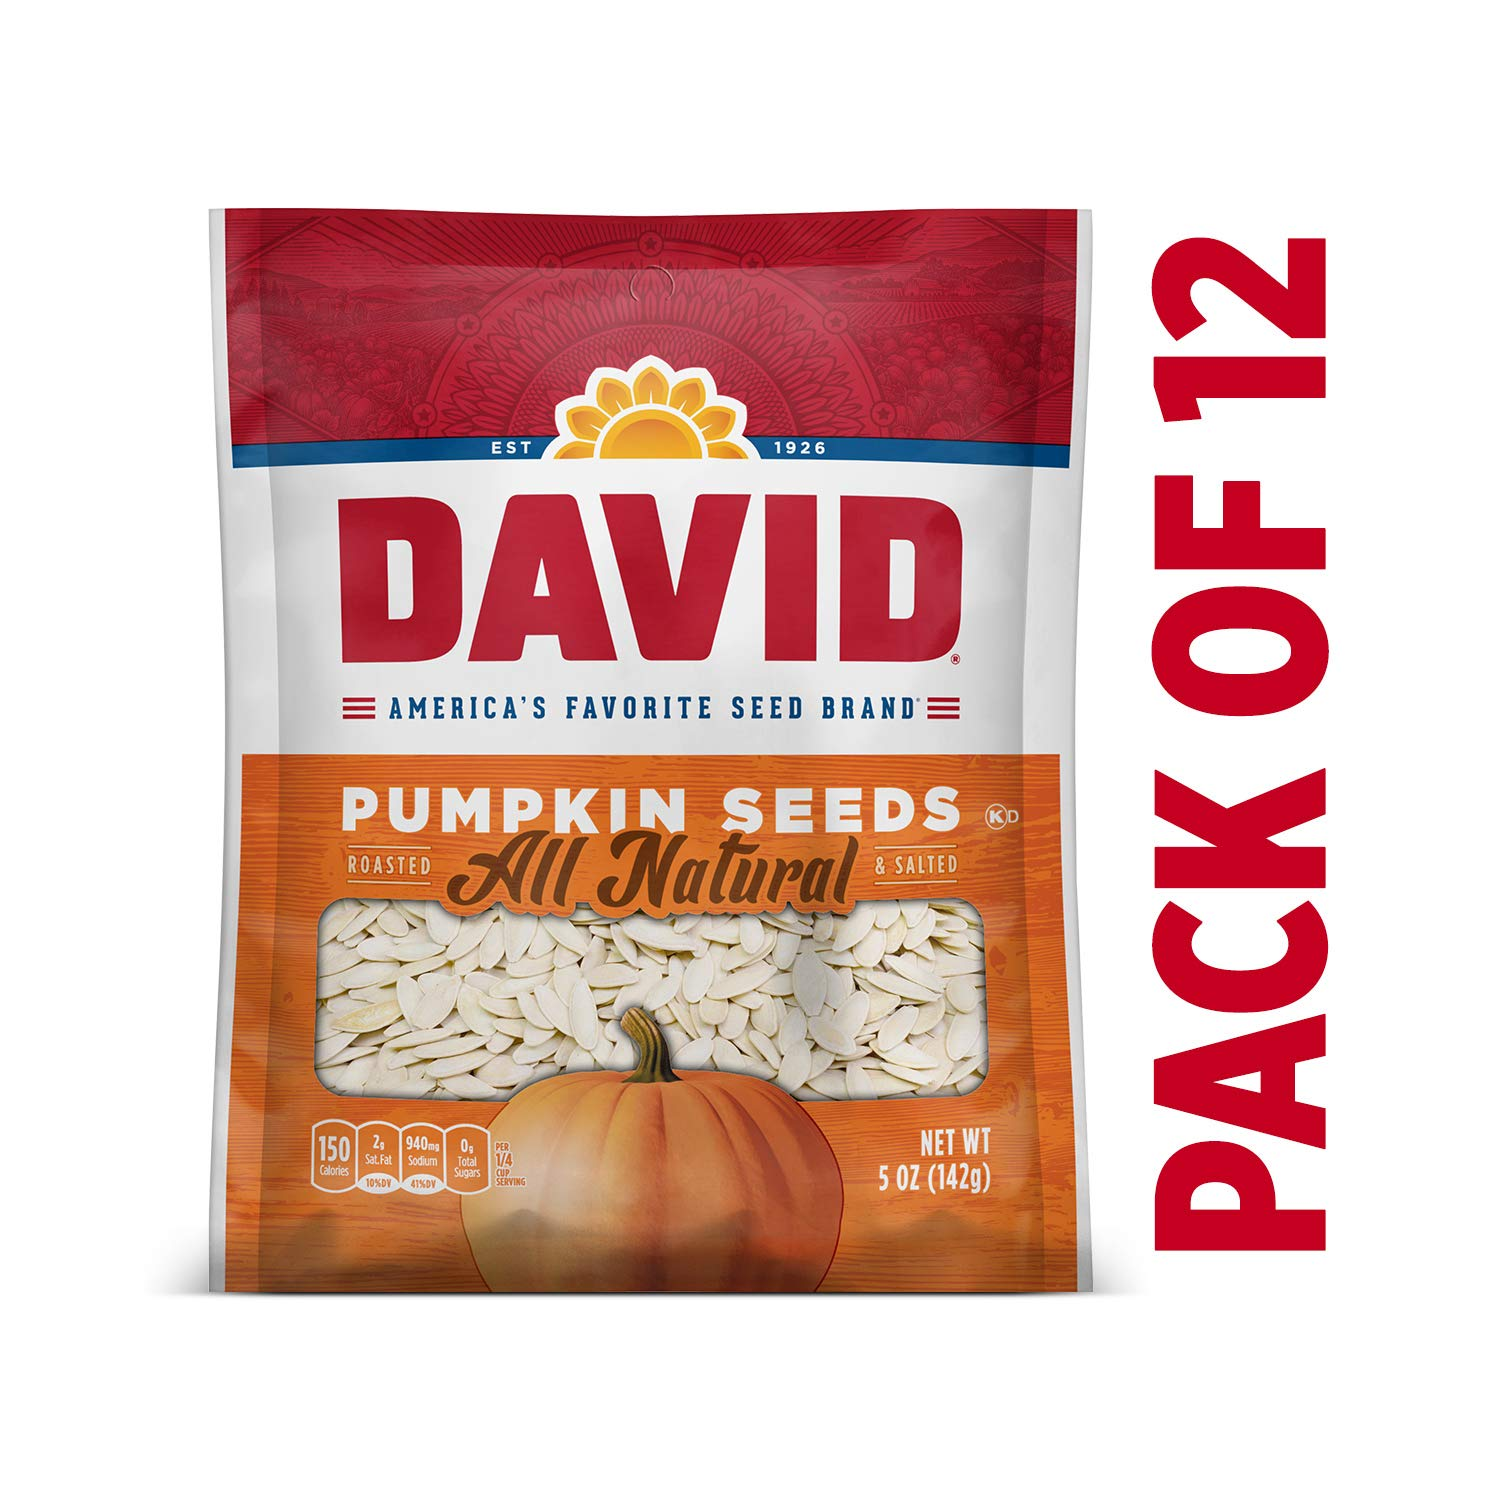 DAVID Roasted and Salted Pumpkin Seeds, 5 oz, Keto Friendly, 12 Pack by DAVID Seeds